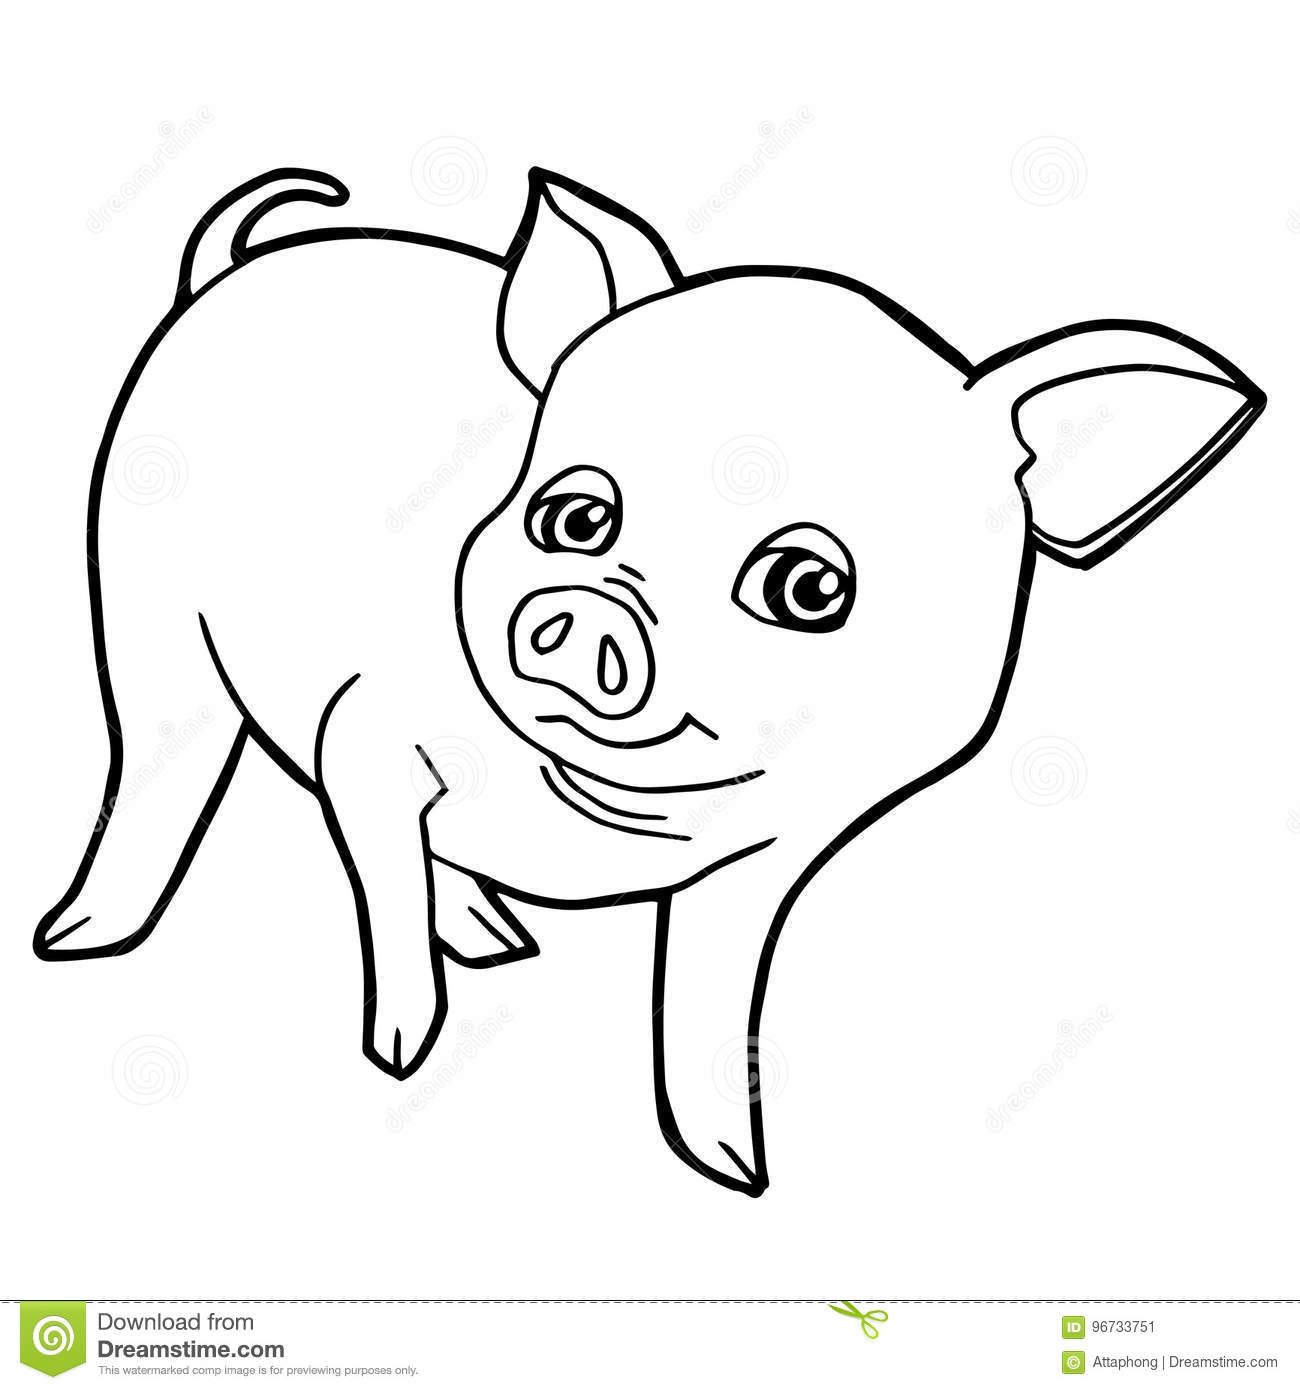 Cartoon Cute Pig Coloring Page Vector Stock Vector - Illustration of ...